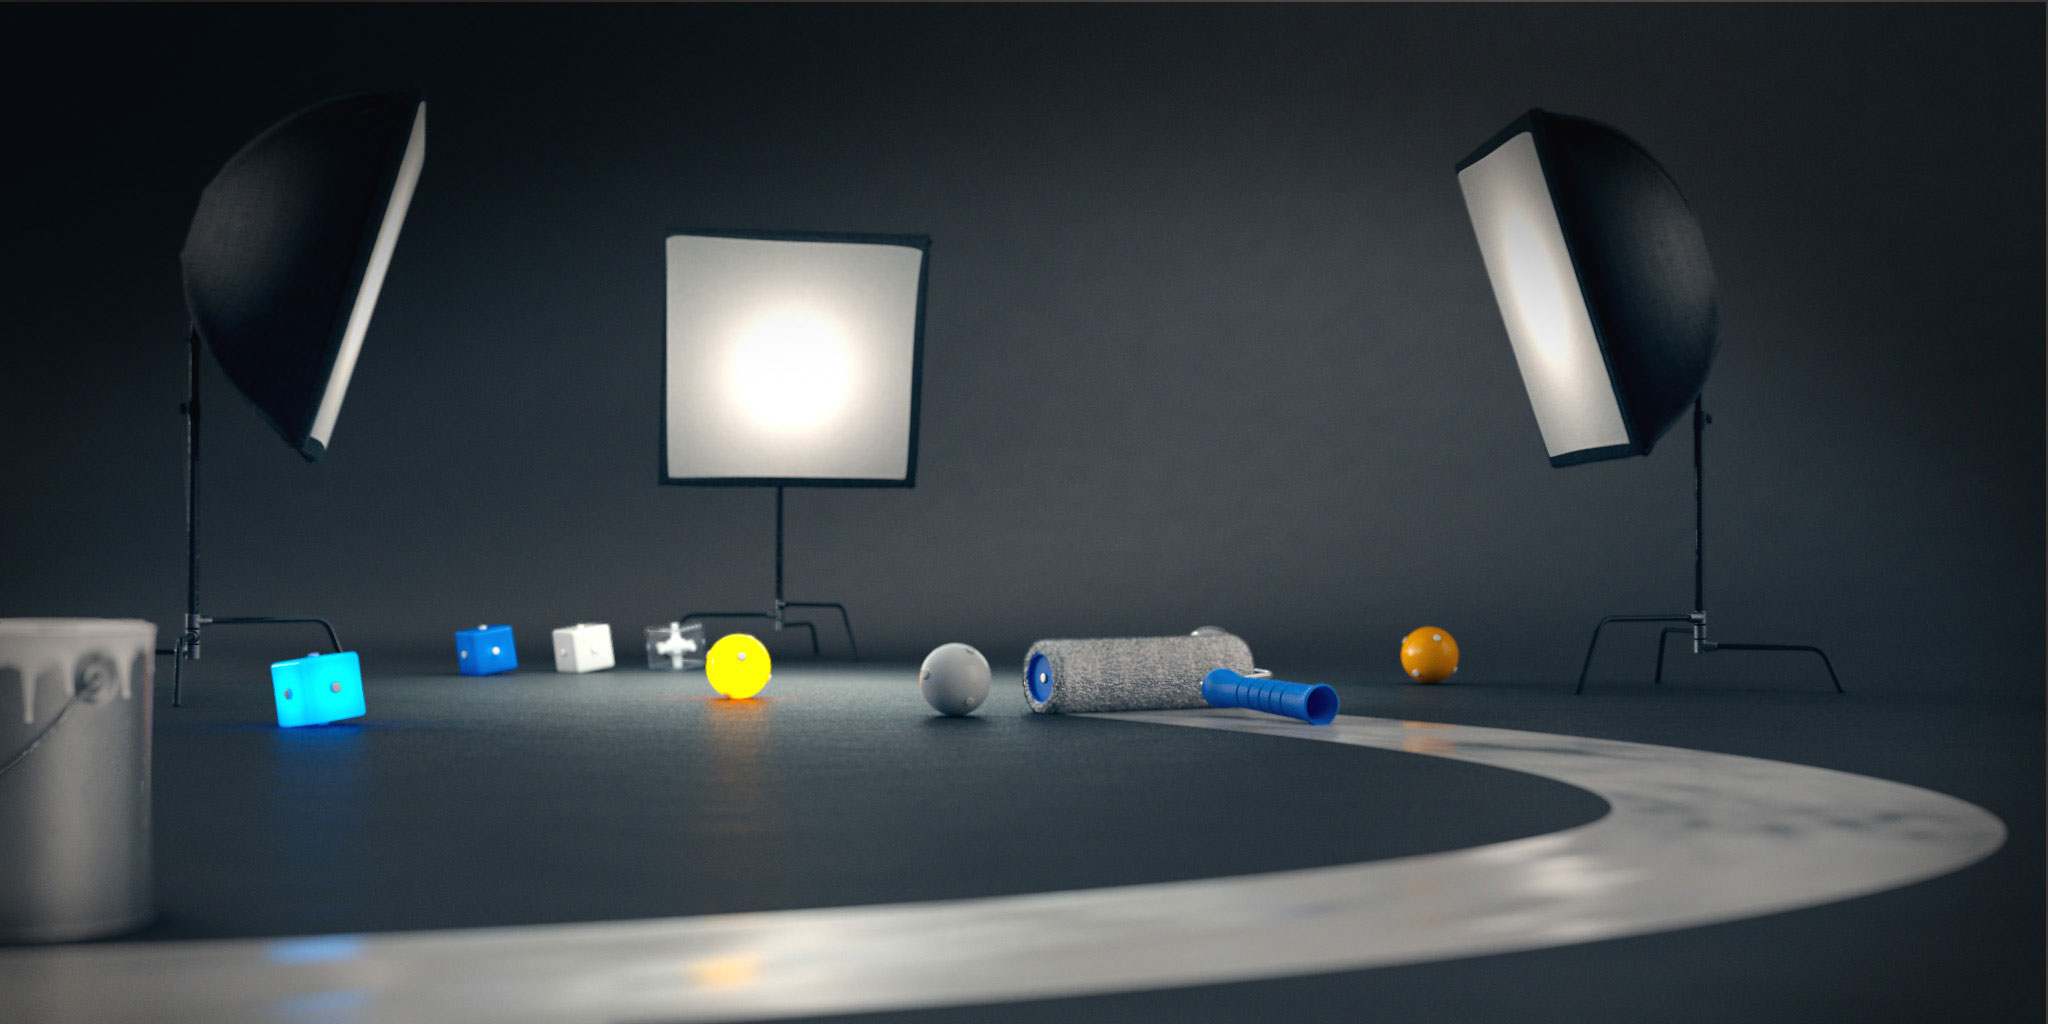 Setting up light rig in 3D